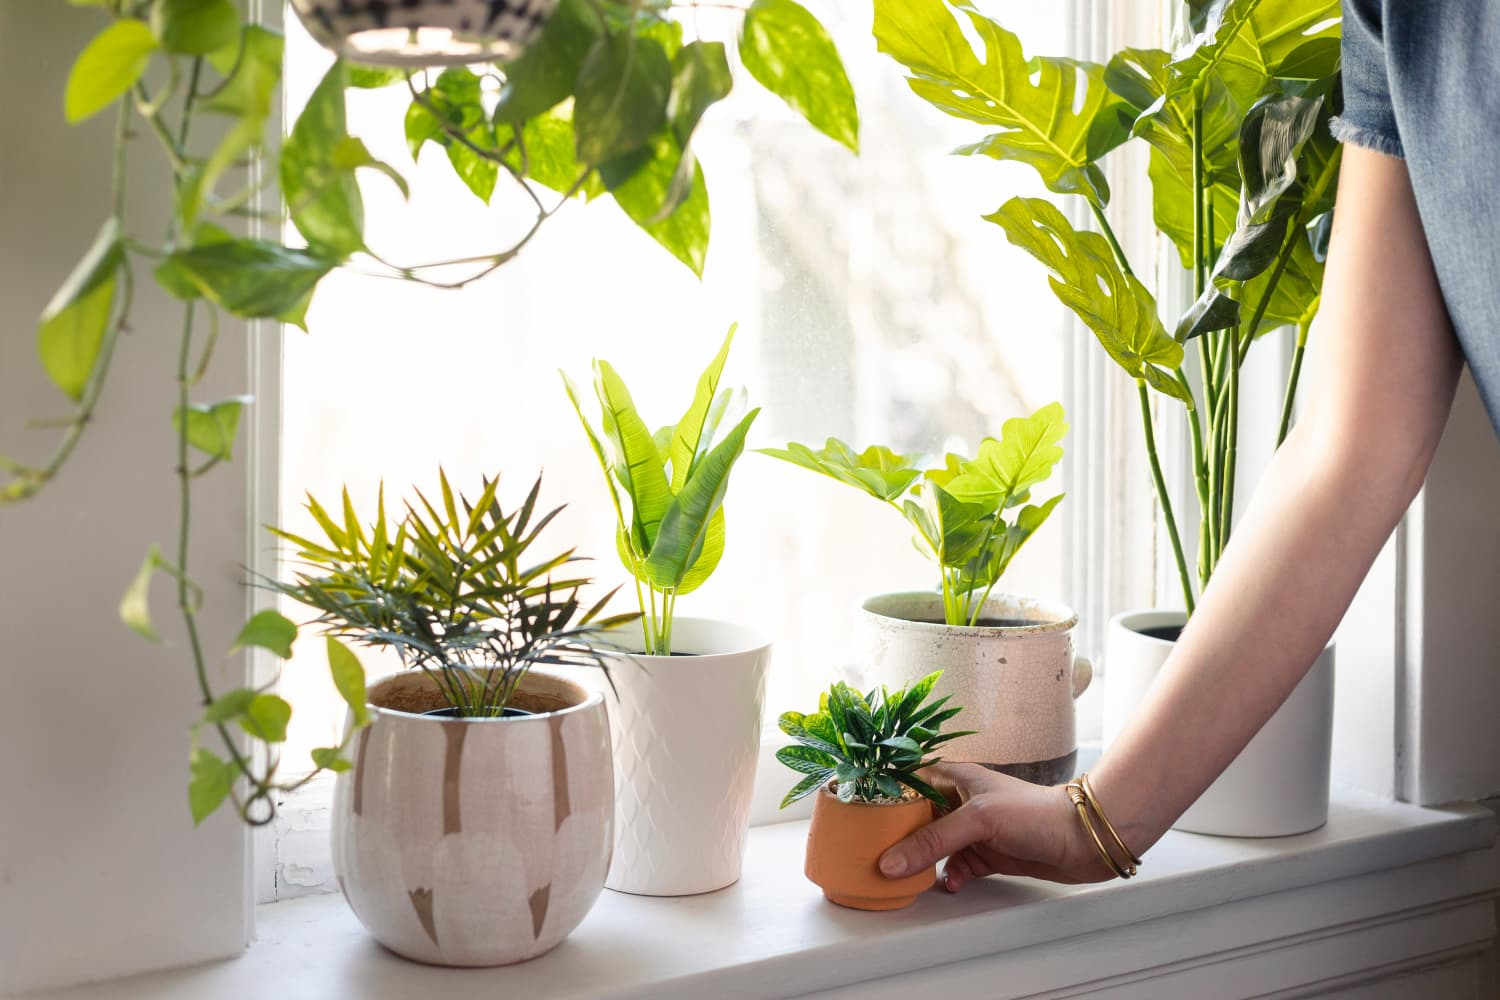 7 Windowsill Plants That Bring Big Style to Small Spaces